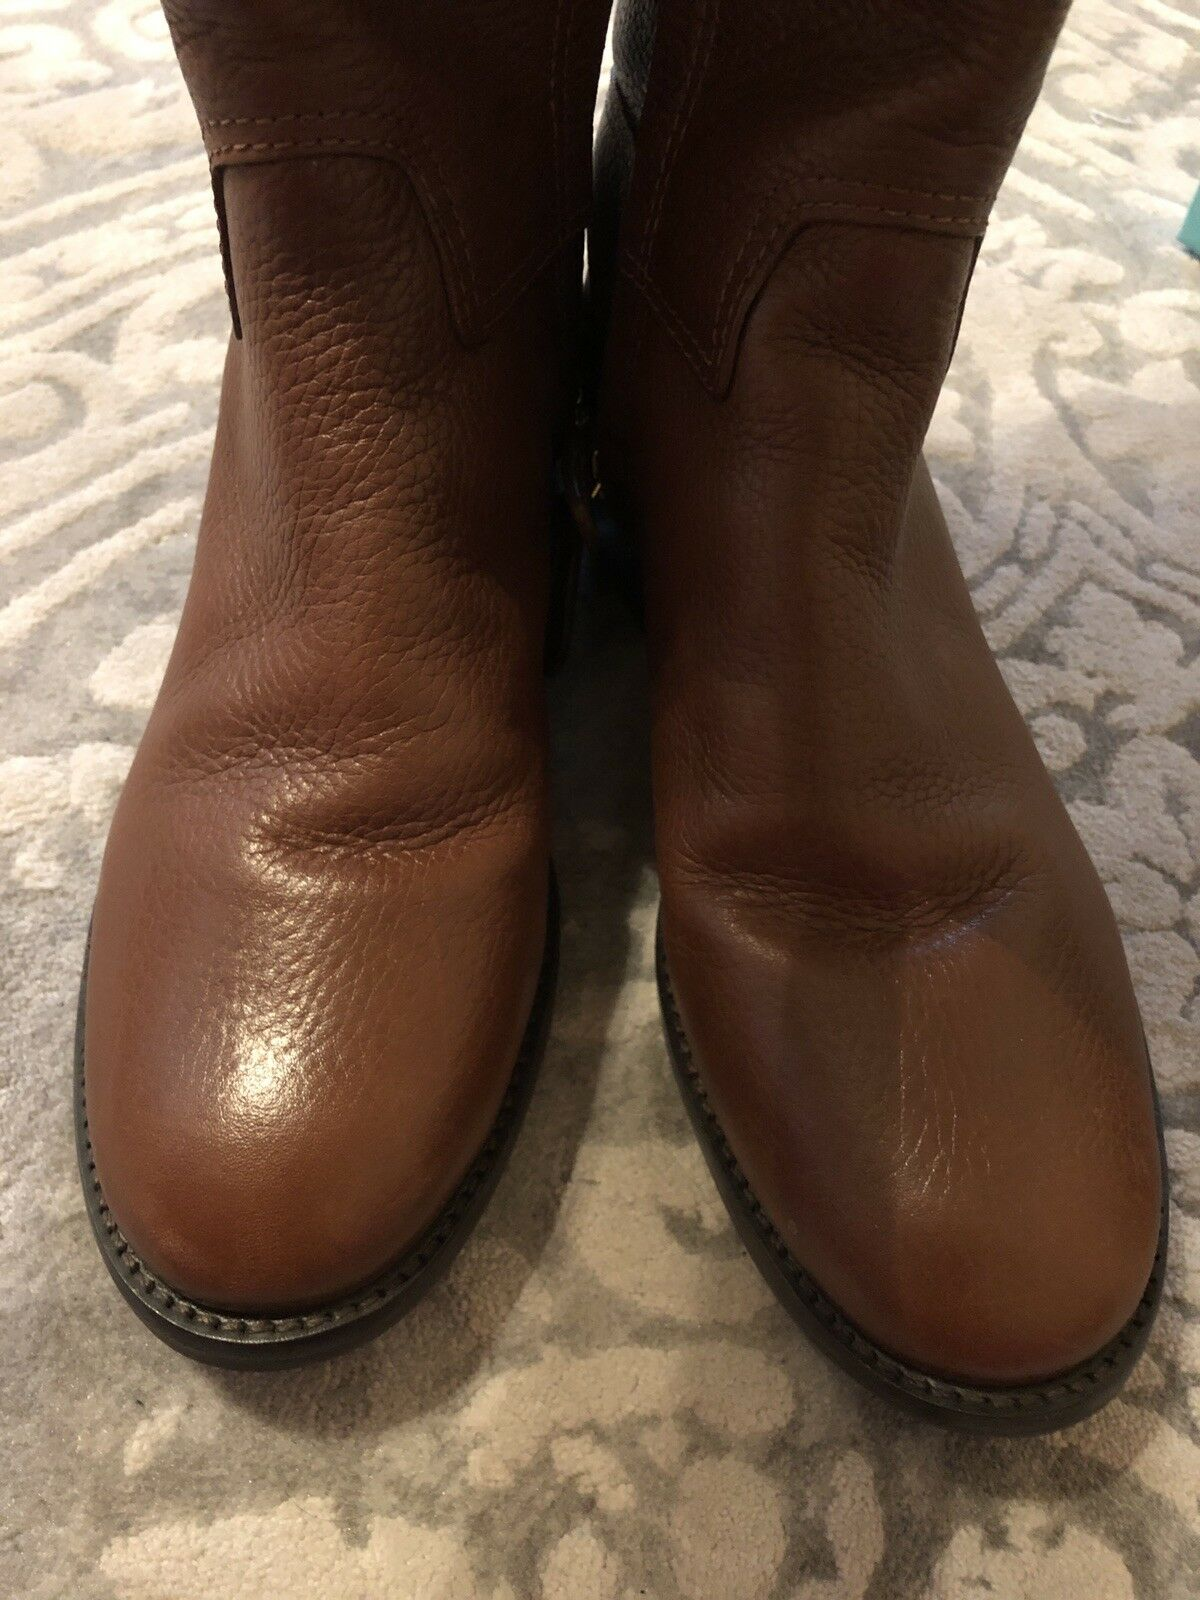 Tory Burch Junction Tumbled Leather Riding Riding Riding Stiefel Almond Gold Sz 6.5 86da8a